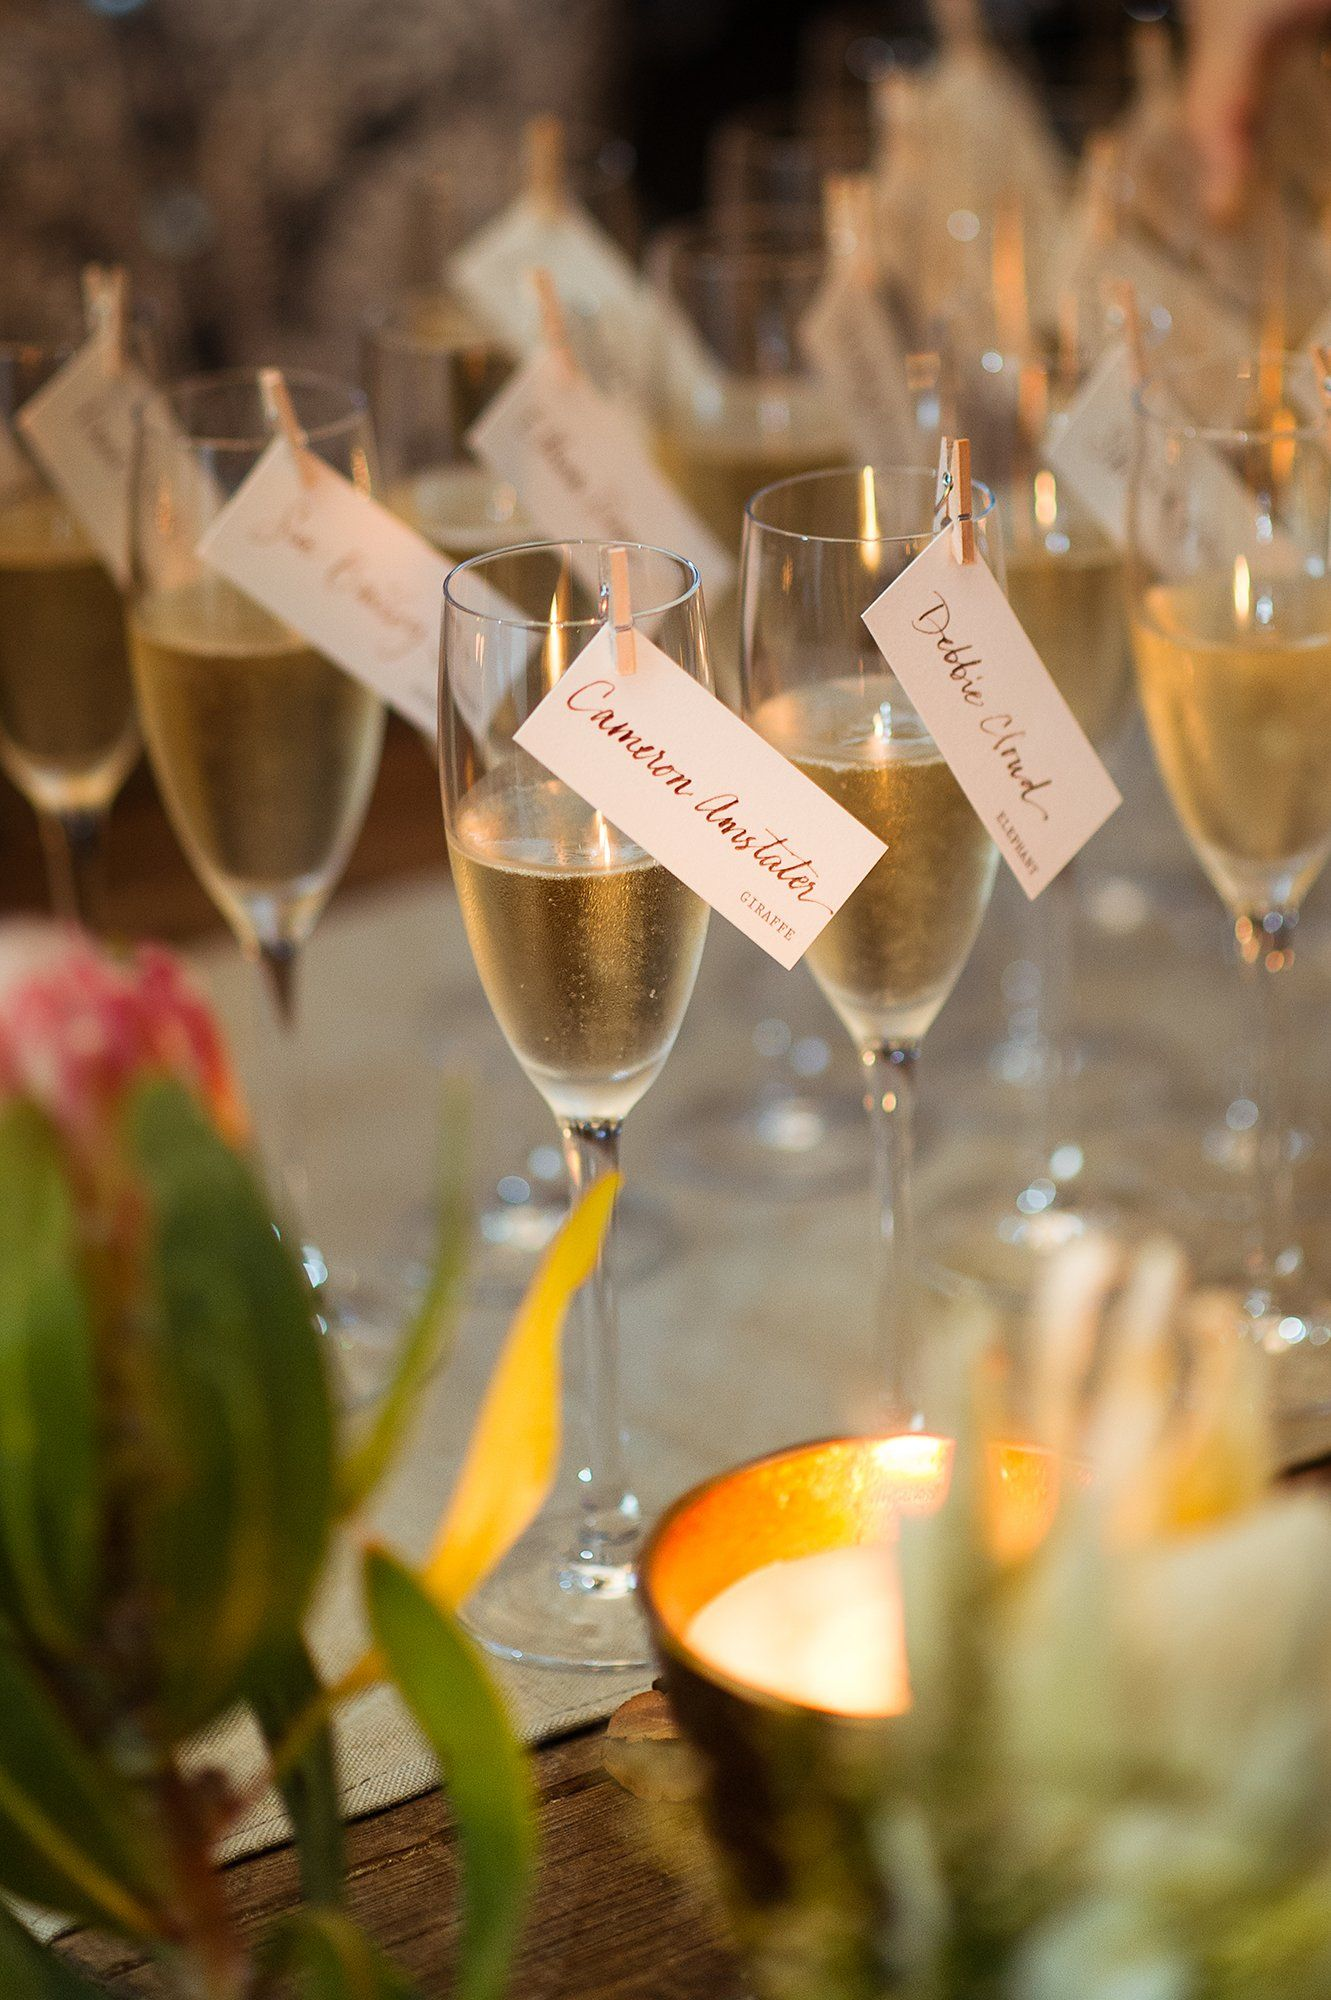 Guests grabbed yet another drink as they entered the reception. We secured place cards to champagne glasses—a win-win for both form and function.